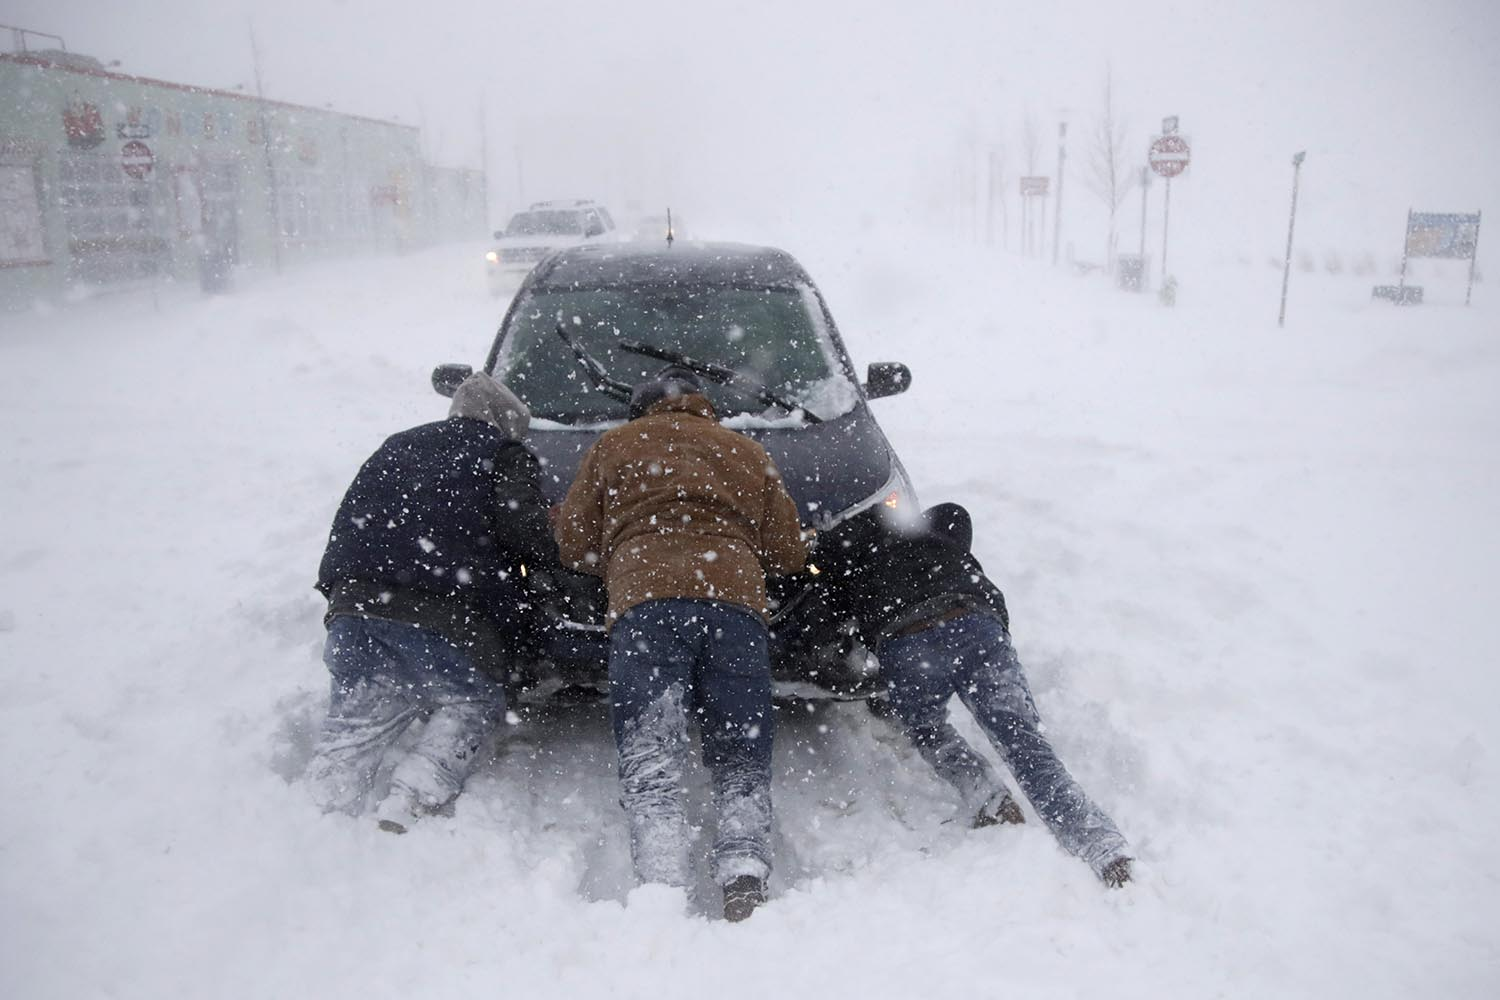 <div class='meta'><div class='origin-logo' data-origin='AP'></div><span class='caption-text' data-credit='AP Photo/Julio Cortez'>A group of men help a motorist after his vehicle was stuck in the snow near Asbury Park boardwalk during a snowstorm, Thursday, Jan. 4, 2018, in Asbury Park, N.J.</span></div>